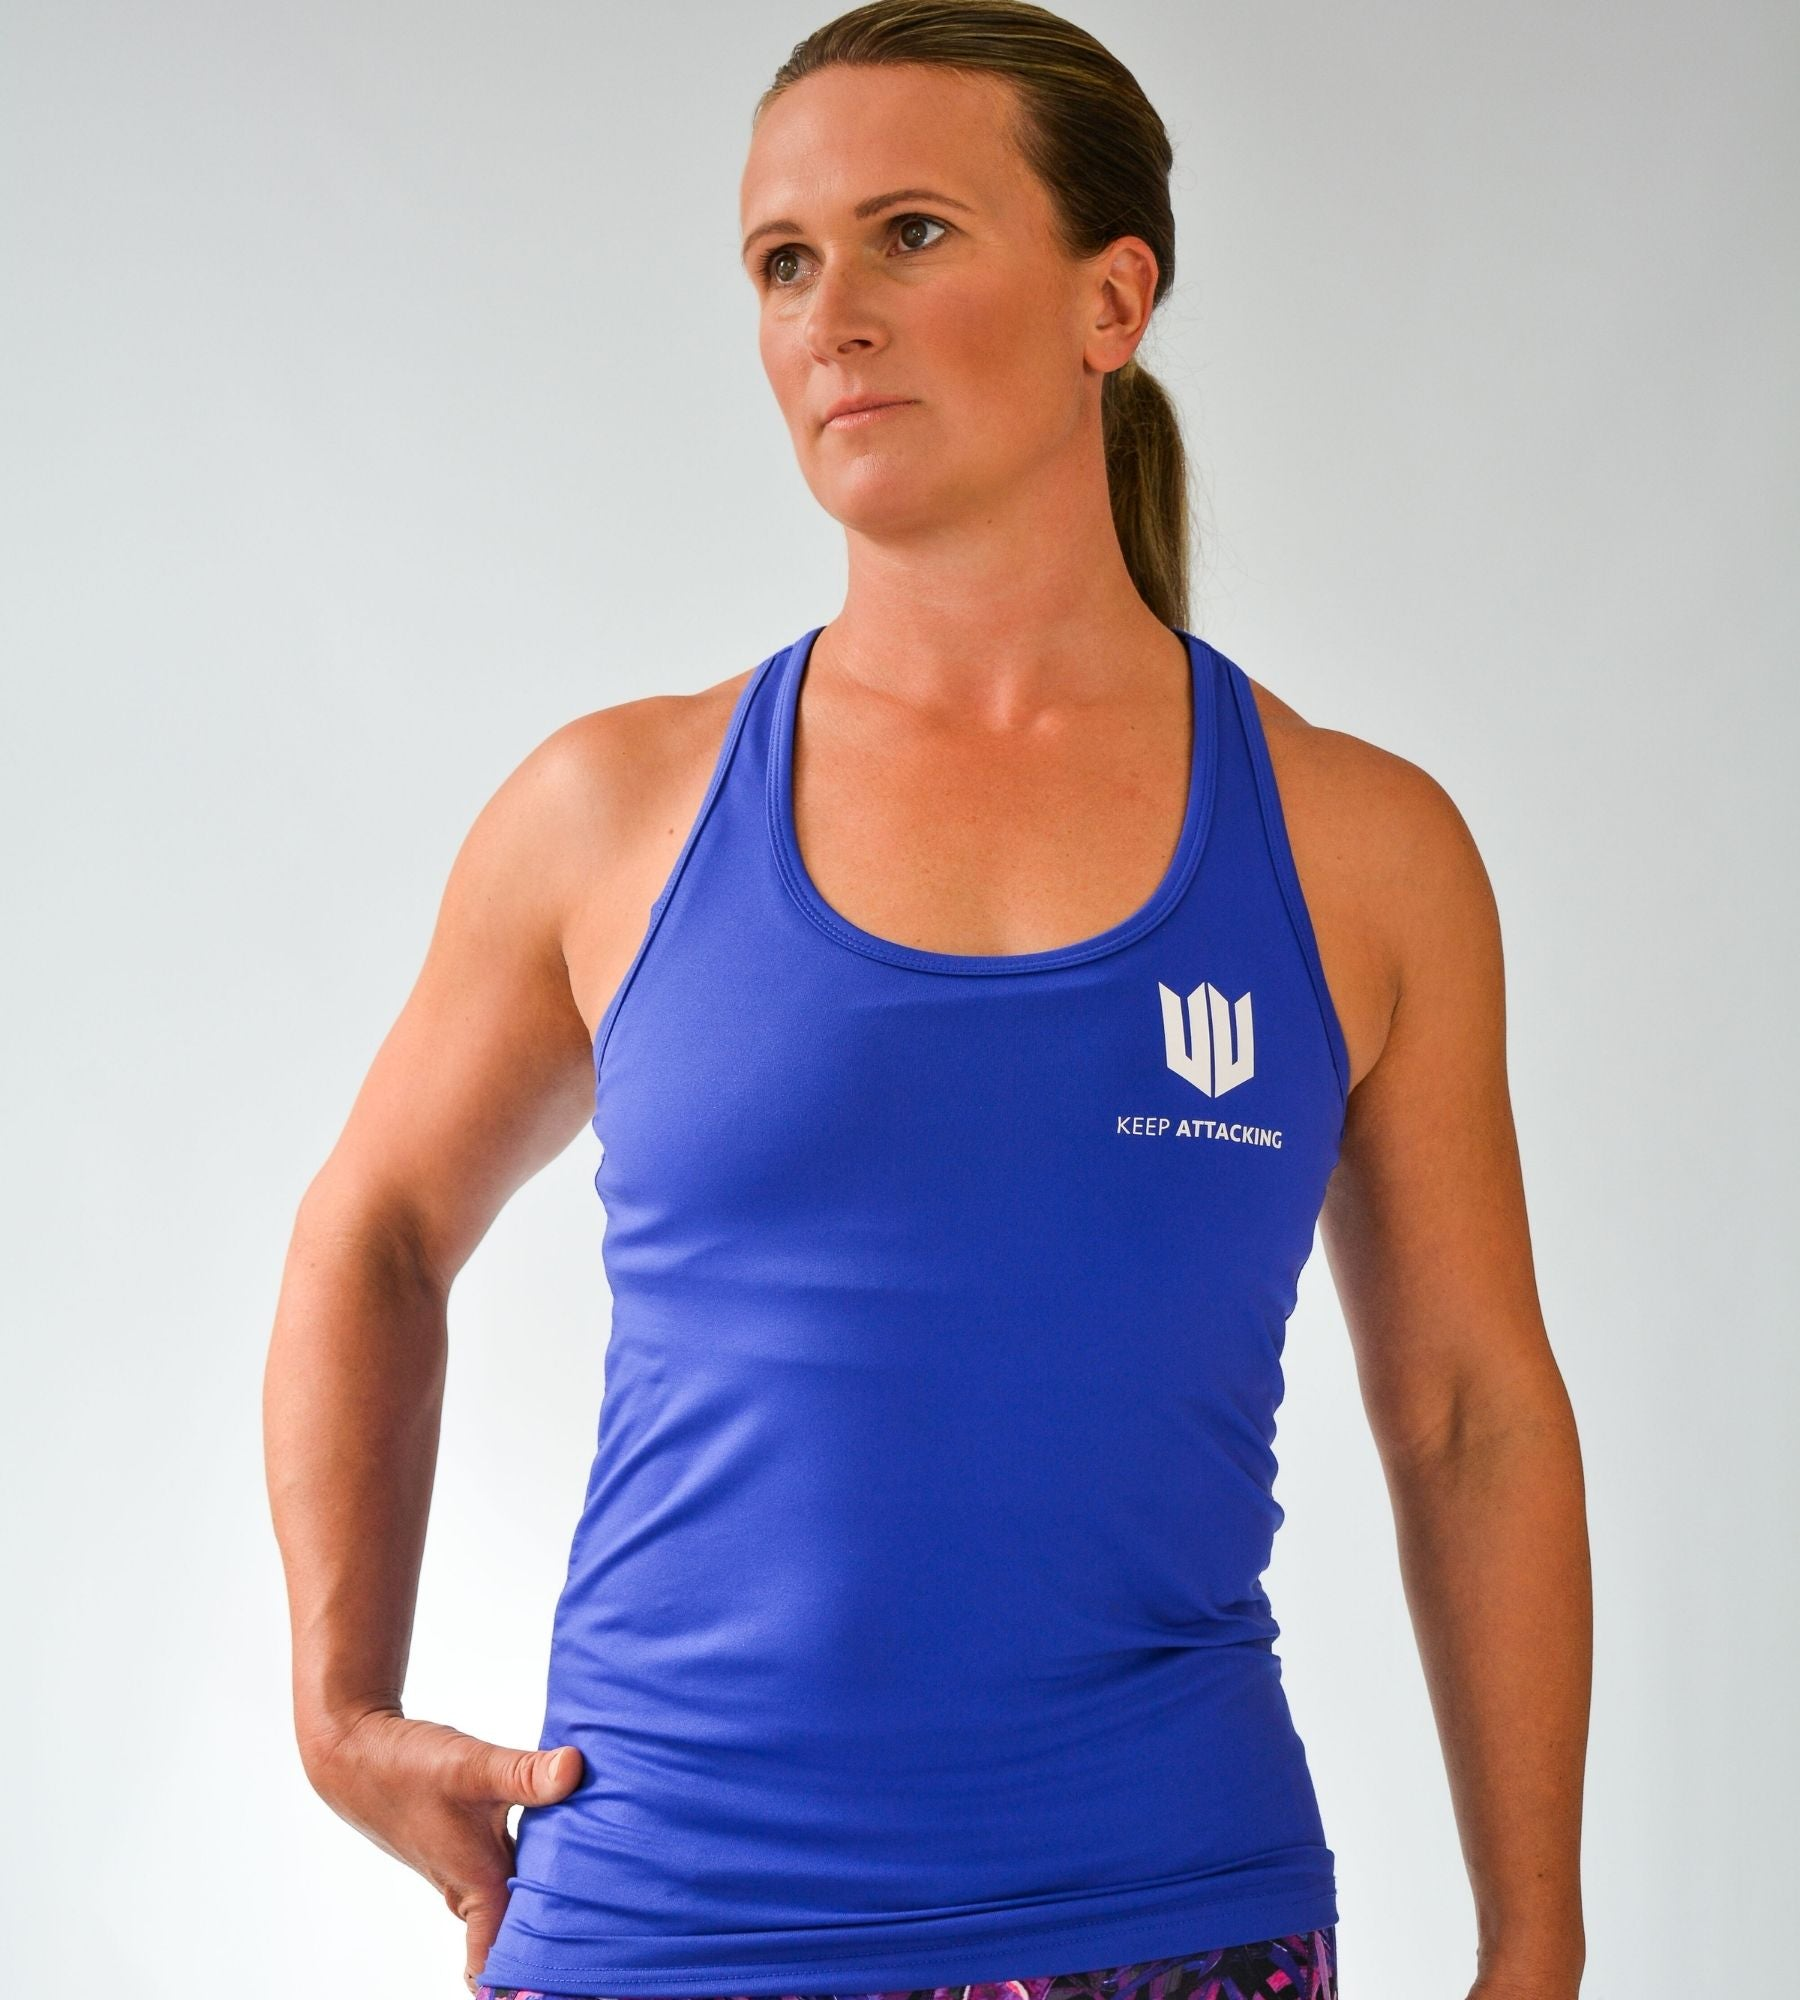 KA Womens Endurance Vest Top Blue with white logo front